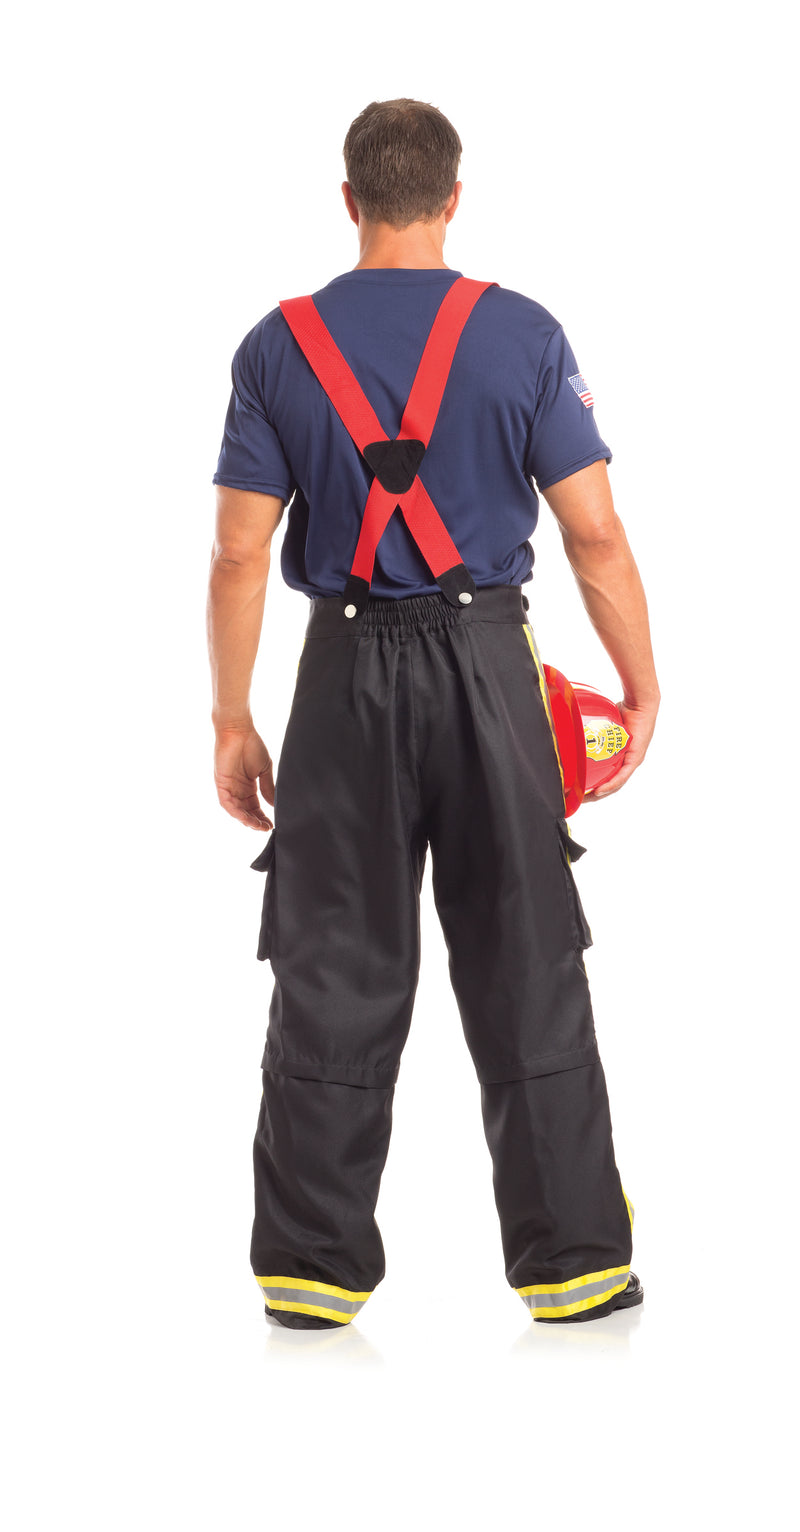 Adult Men's 3 Piece Fire Fighter Halloween Party Costume - Fest Threads